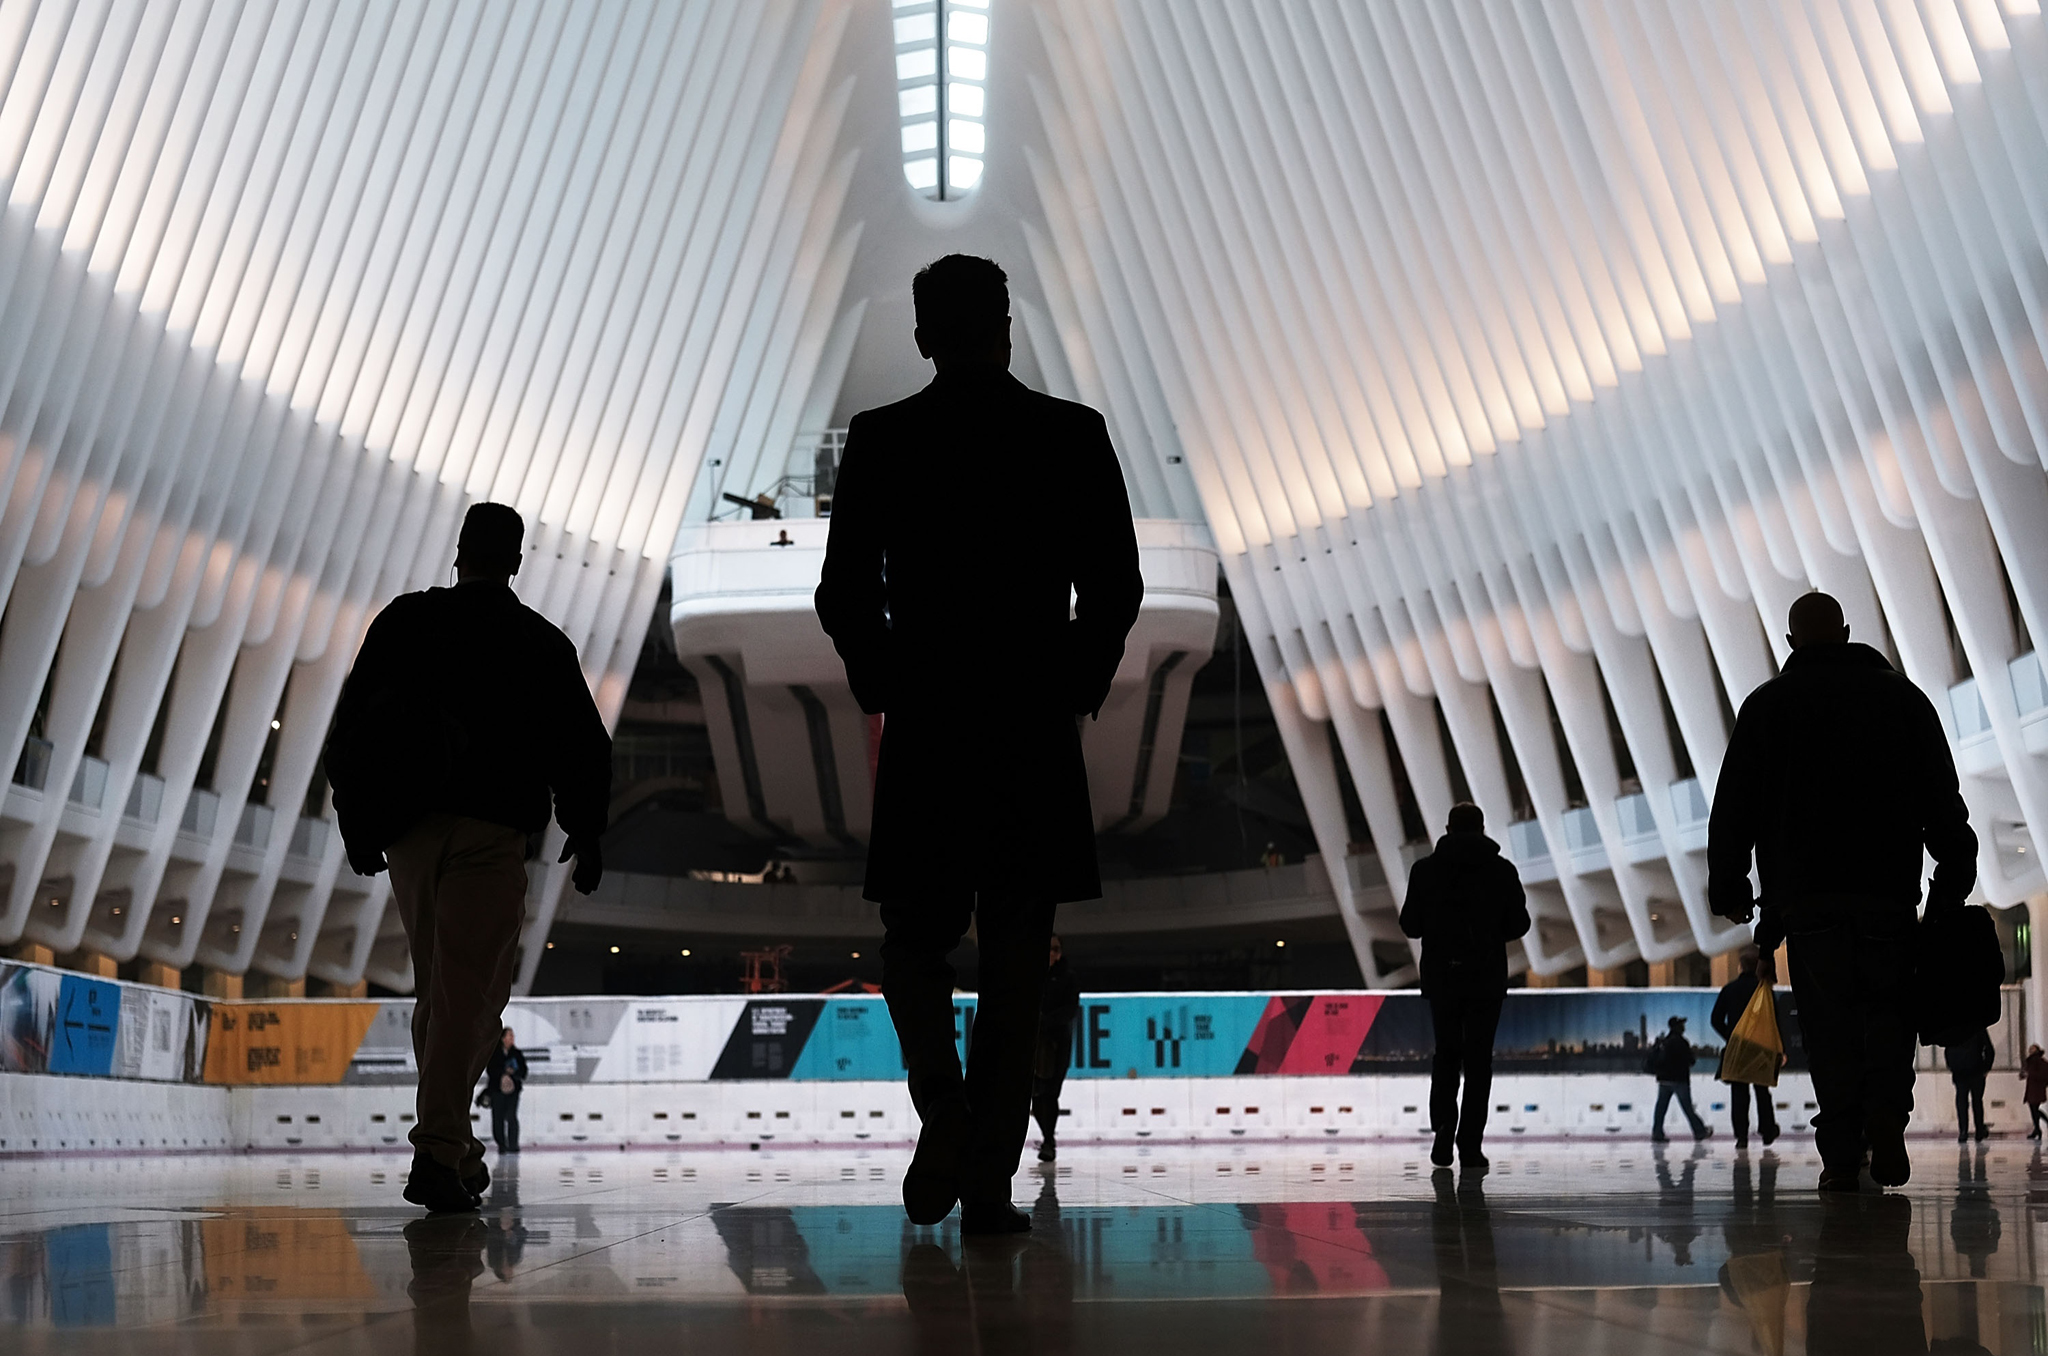 "New WTC State-Of-The-Art Transportation Hub ""Oculus"" Opens To The Public...NEW YORK, NY - MARCH 07: Commuters walk through the Oculus of the partially opened World Trade Center Transportation Hub after nearly 12 years of construction on March 7, 2016 in New York City. The grand structure was designed by Spanish architect Santiago Calatrava at a cost of $4 billion in public money, almost $2 billion over budget. The hub offers connections to the PATH train connecting New York City and New Jersey. (Photo by Spencer Platt/Getty Images)"